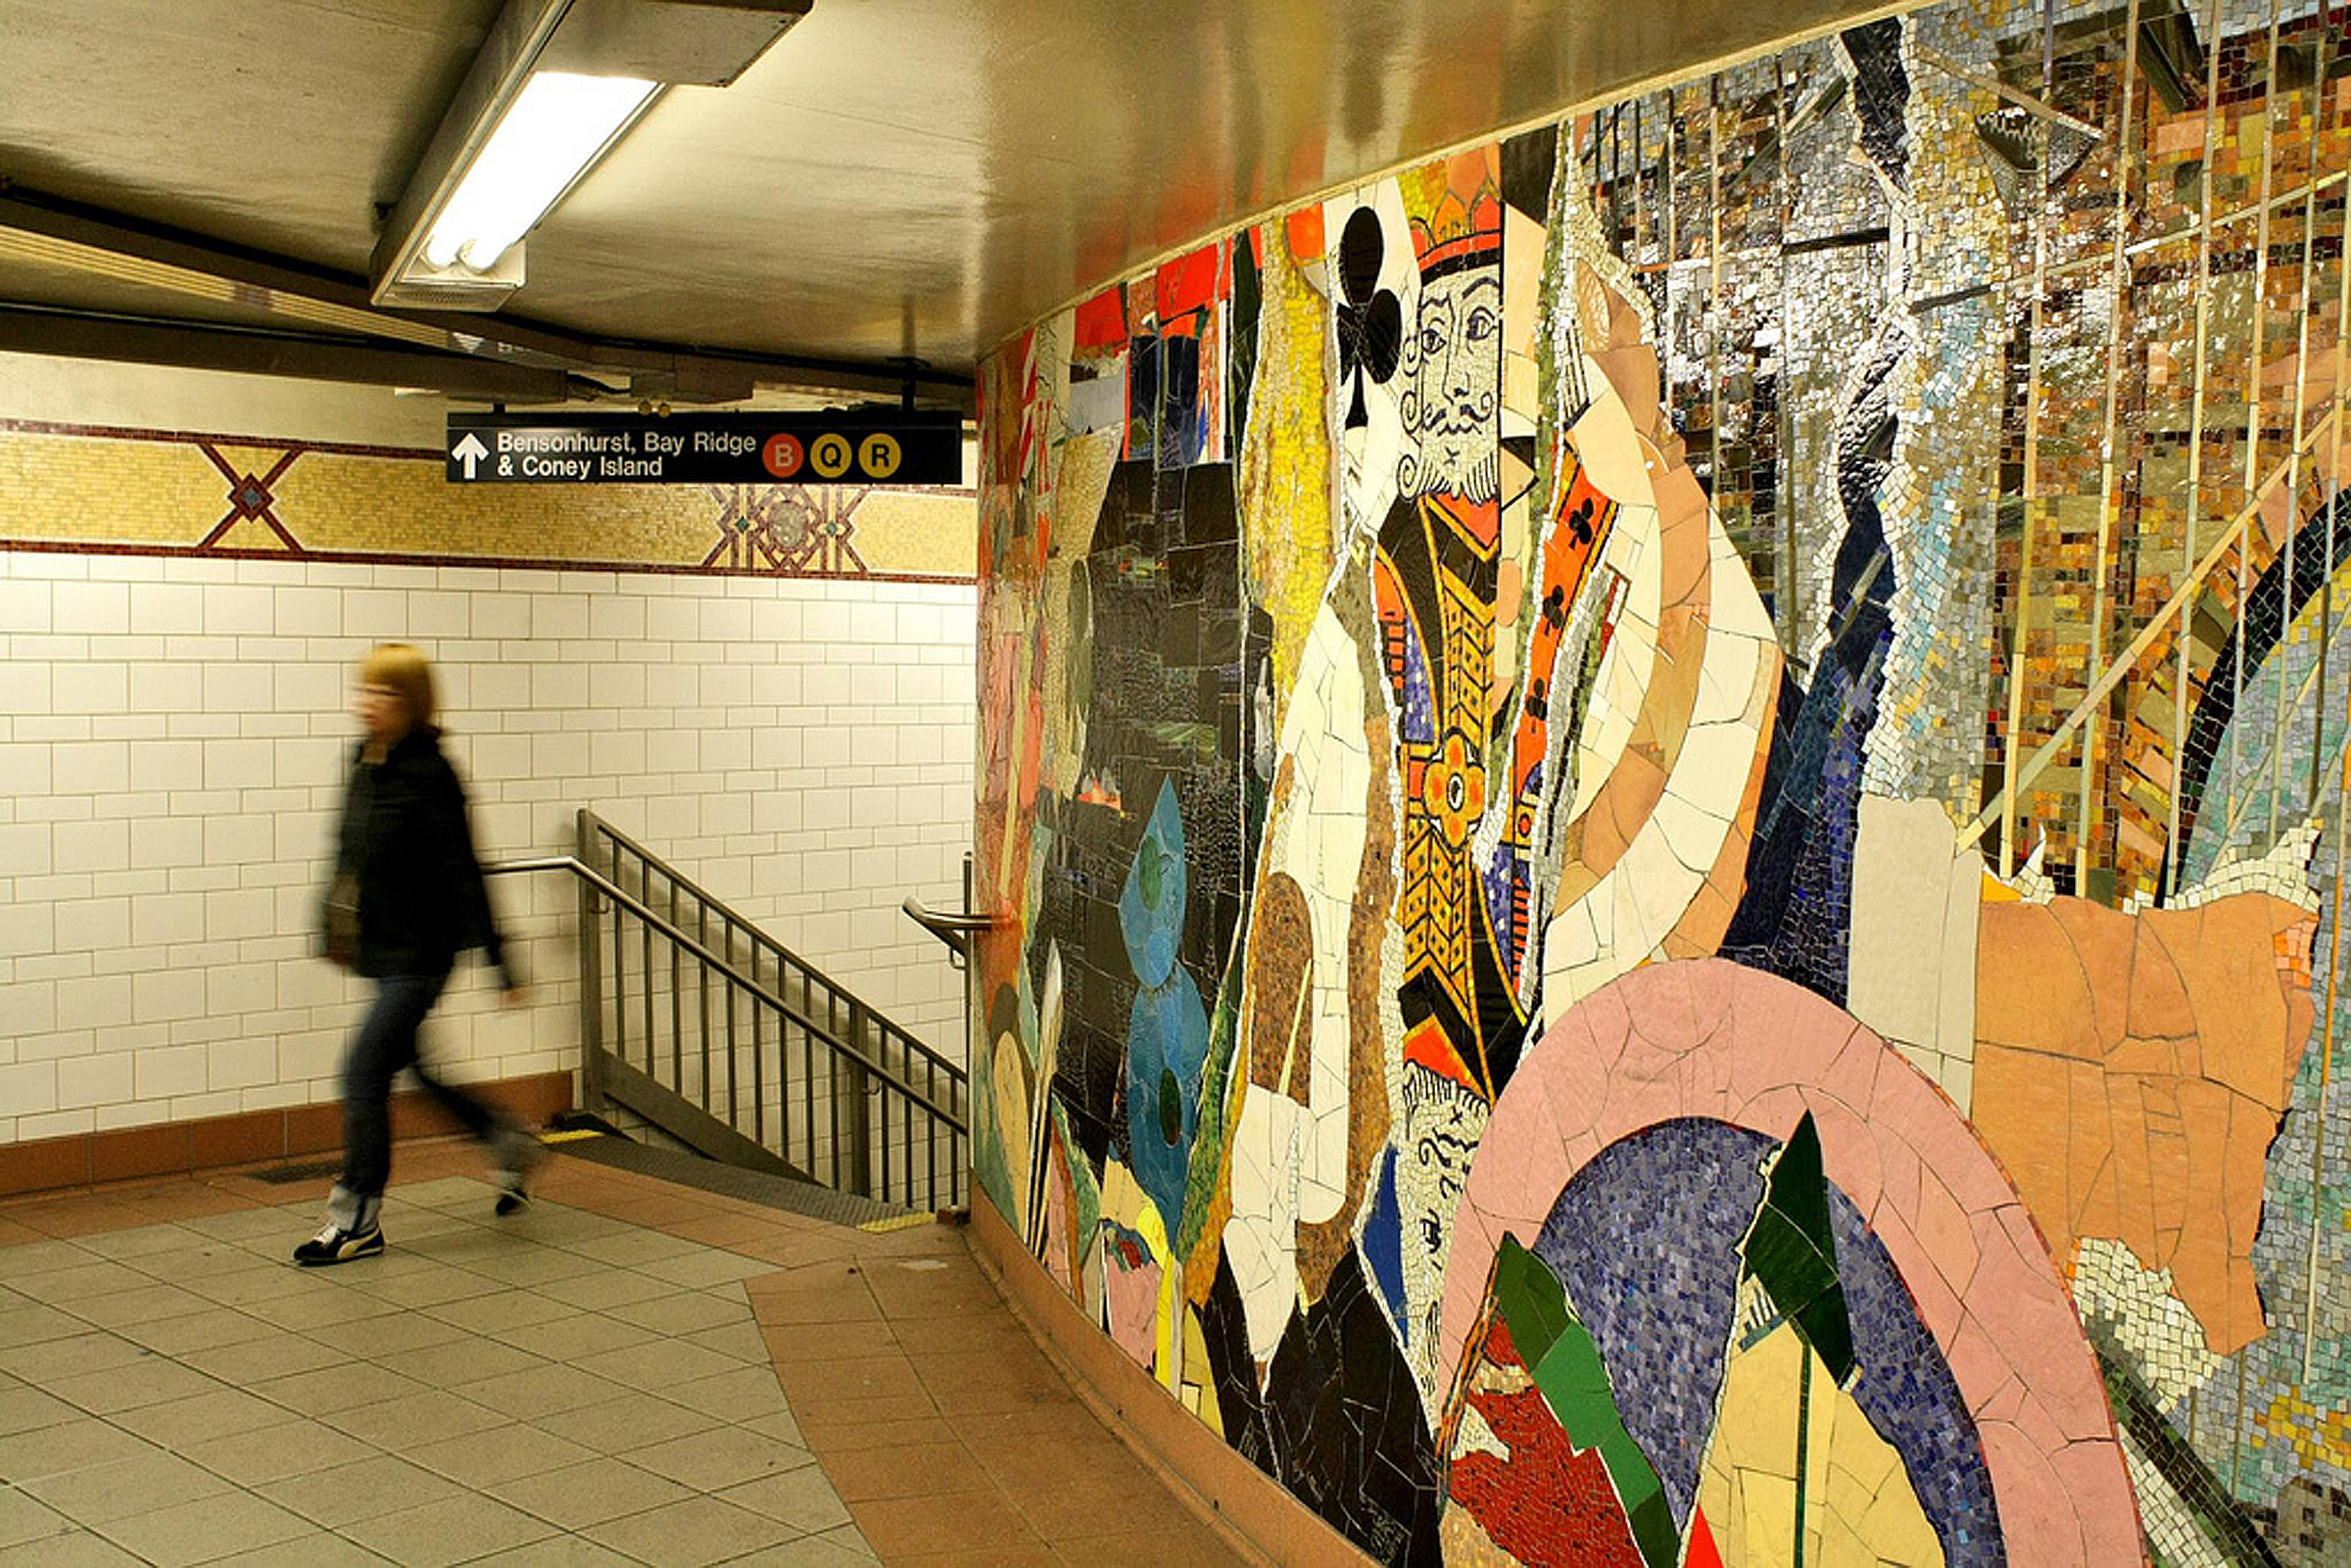 DeKalb Ave Subway